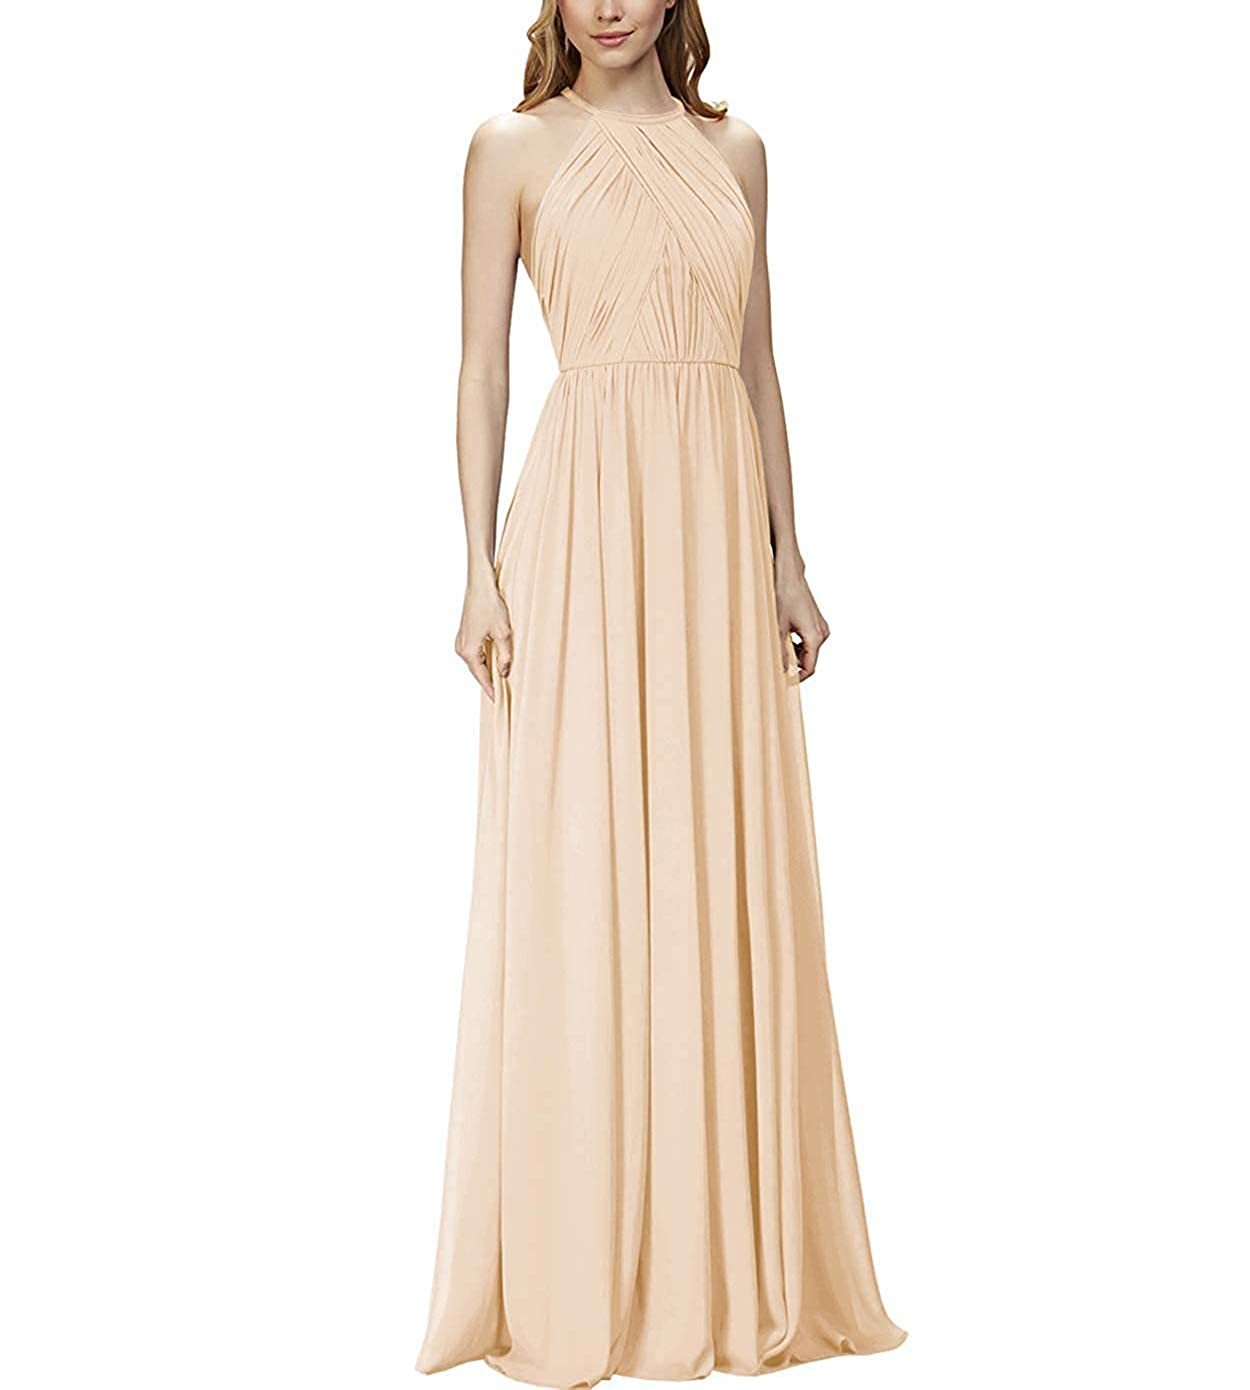 Champagne NewFex Halter Long Bridesmaid Dresses 2019 Aline Ruffled Formal Women's Evening Gown